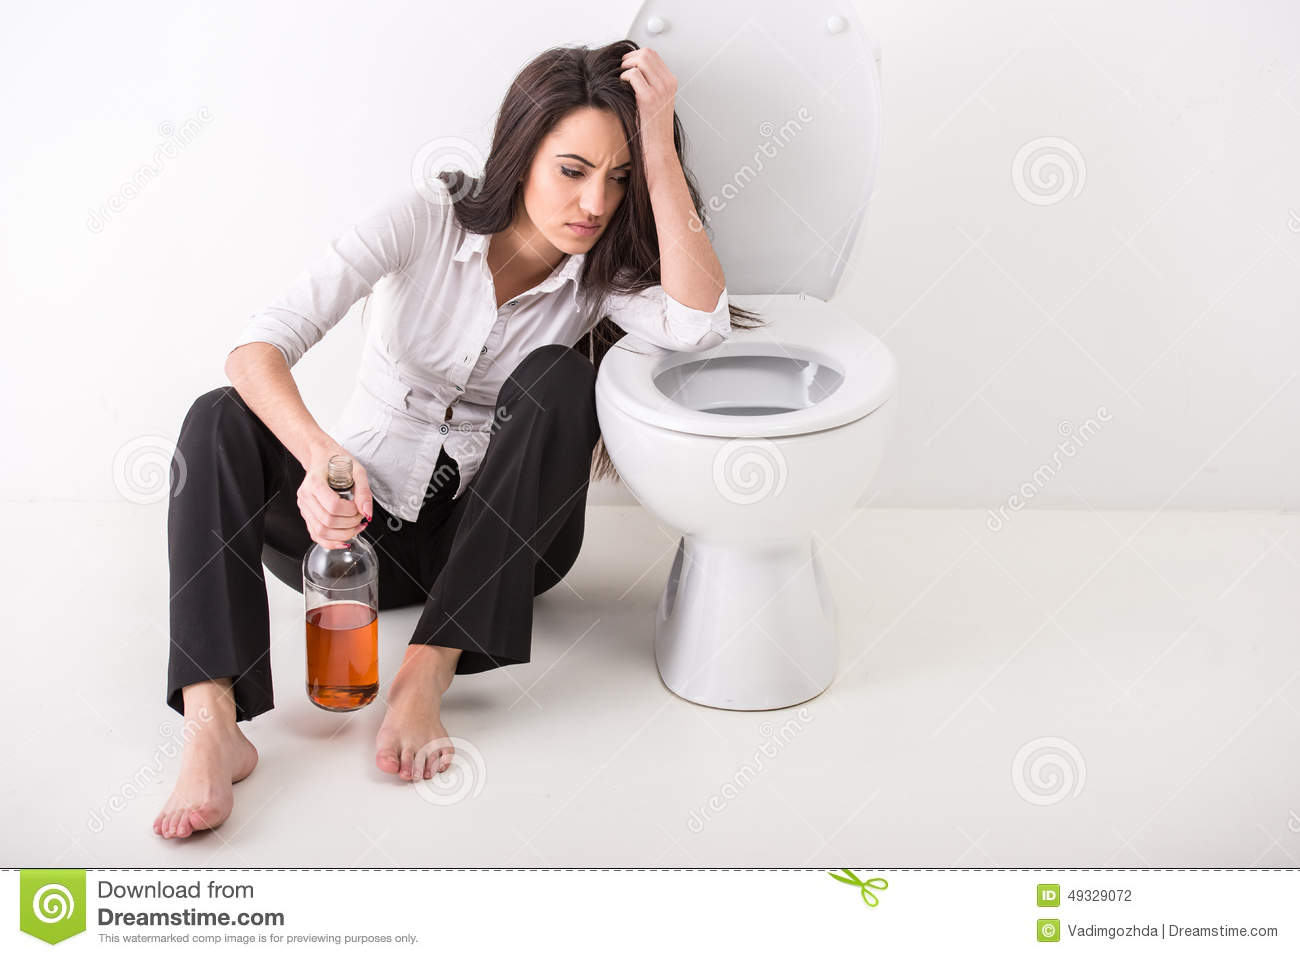 how to stop toilet smelling of urine